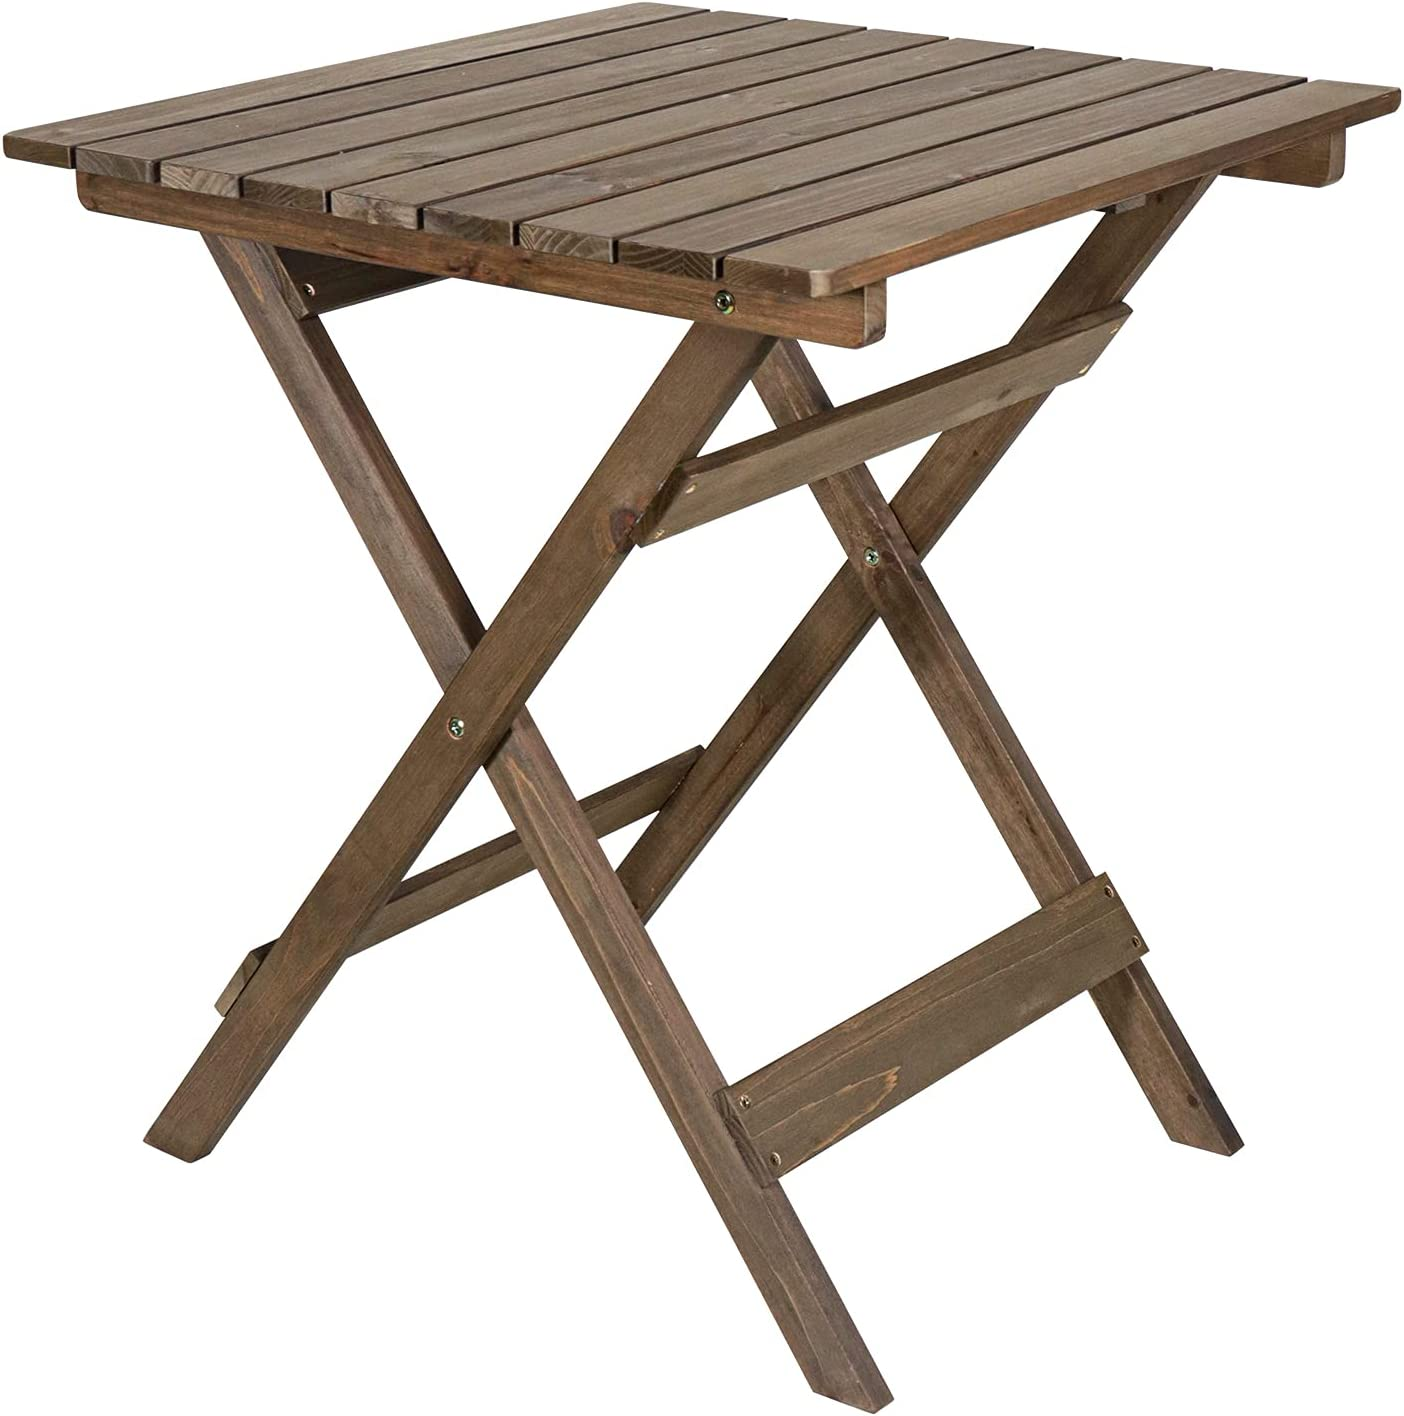 WELNOW Outdoor Foldable Folding Table Bistro New product type Patio 23.6